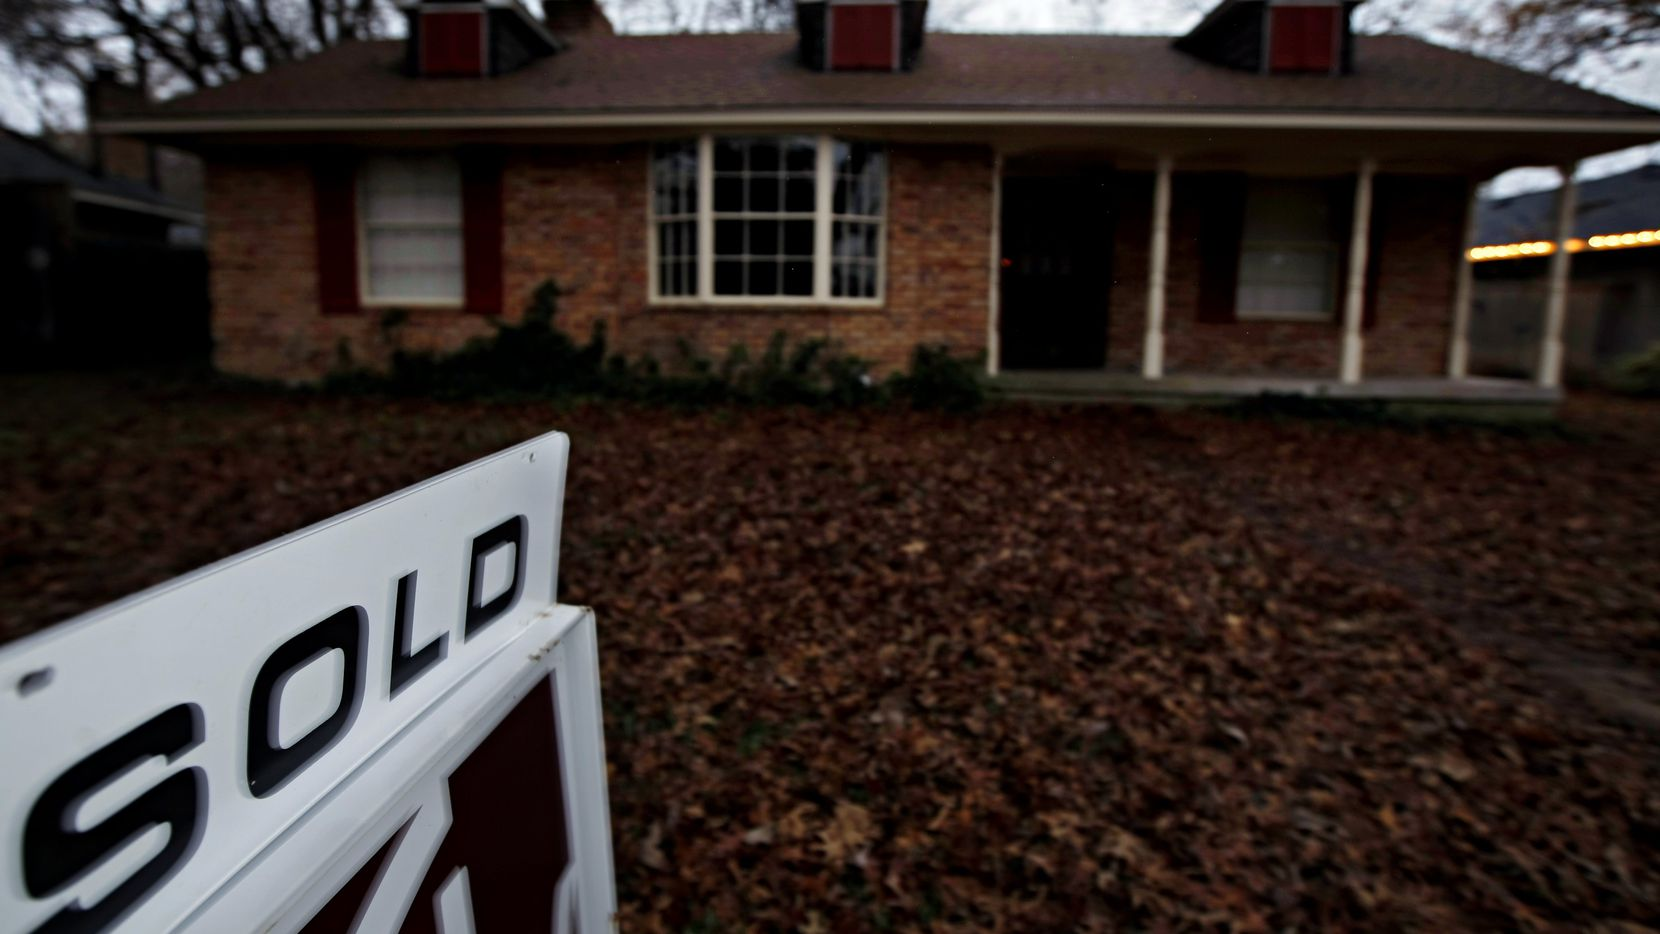 North Texas home sales and price increases will outpace the nation next year, according to a new forecast.